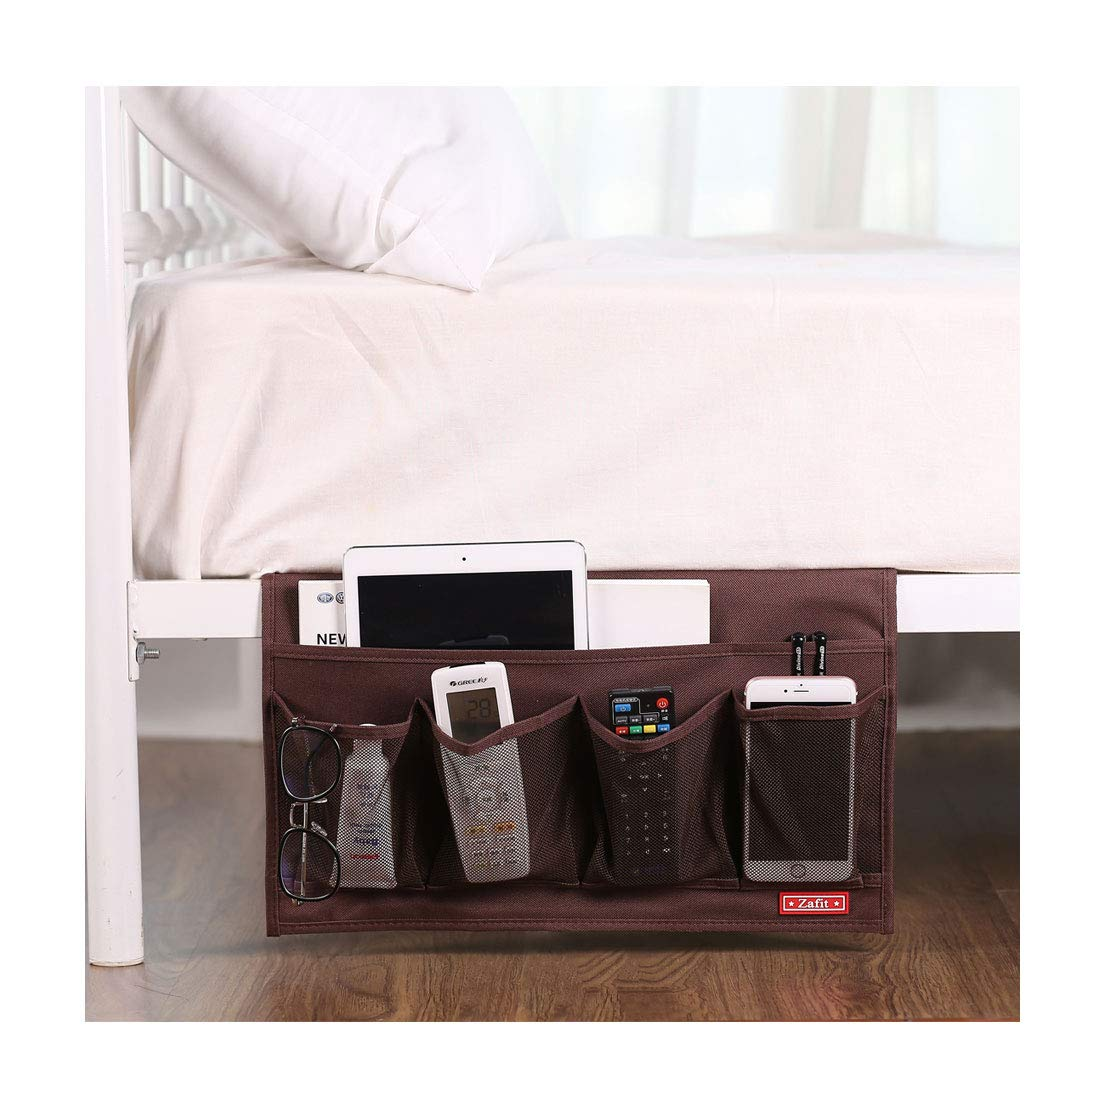 Zafit 6 Pockets Bedside Storage Organizer, Table cabinet Storage Organizer Bedside Organizer Caddy for Remotes Phone Glasses (Coffee)